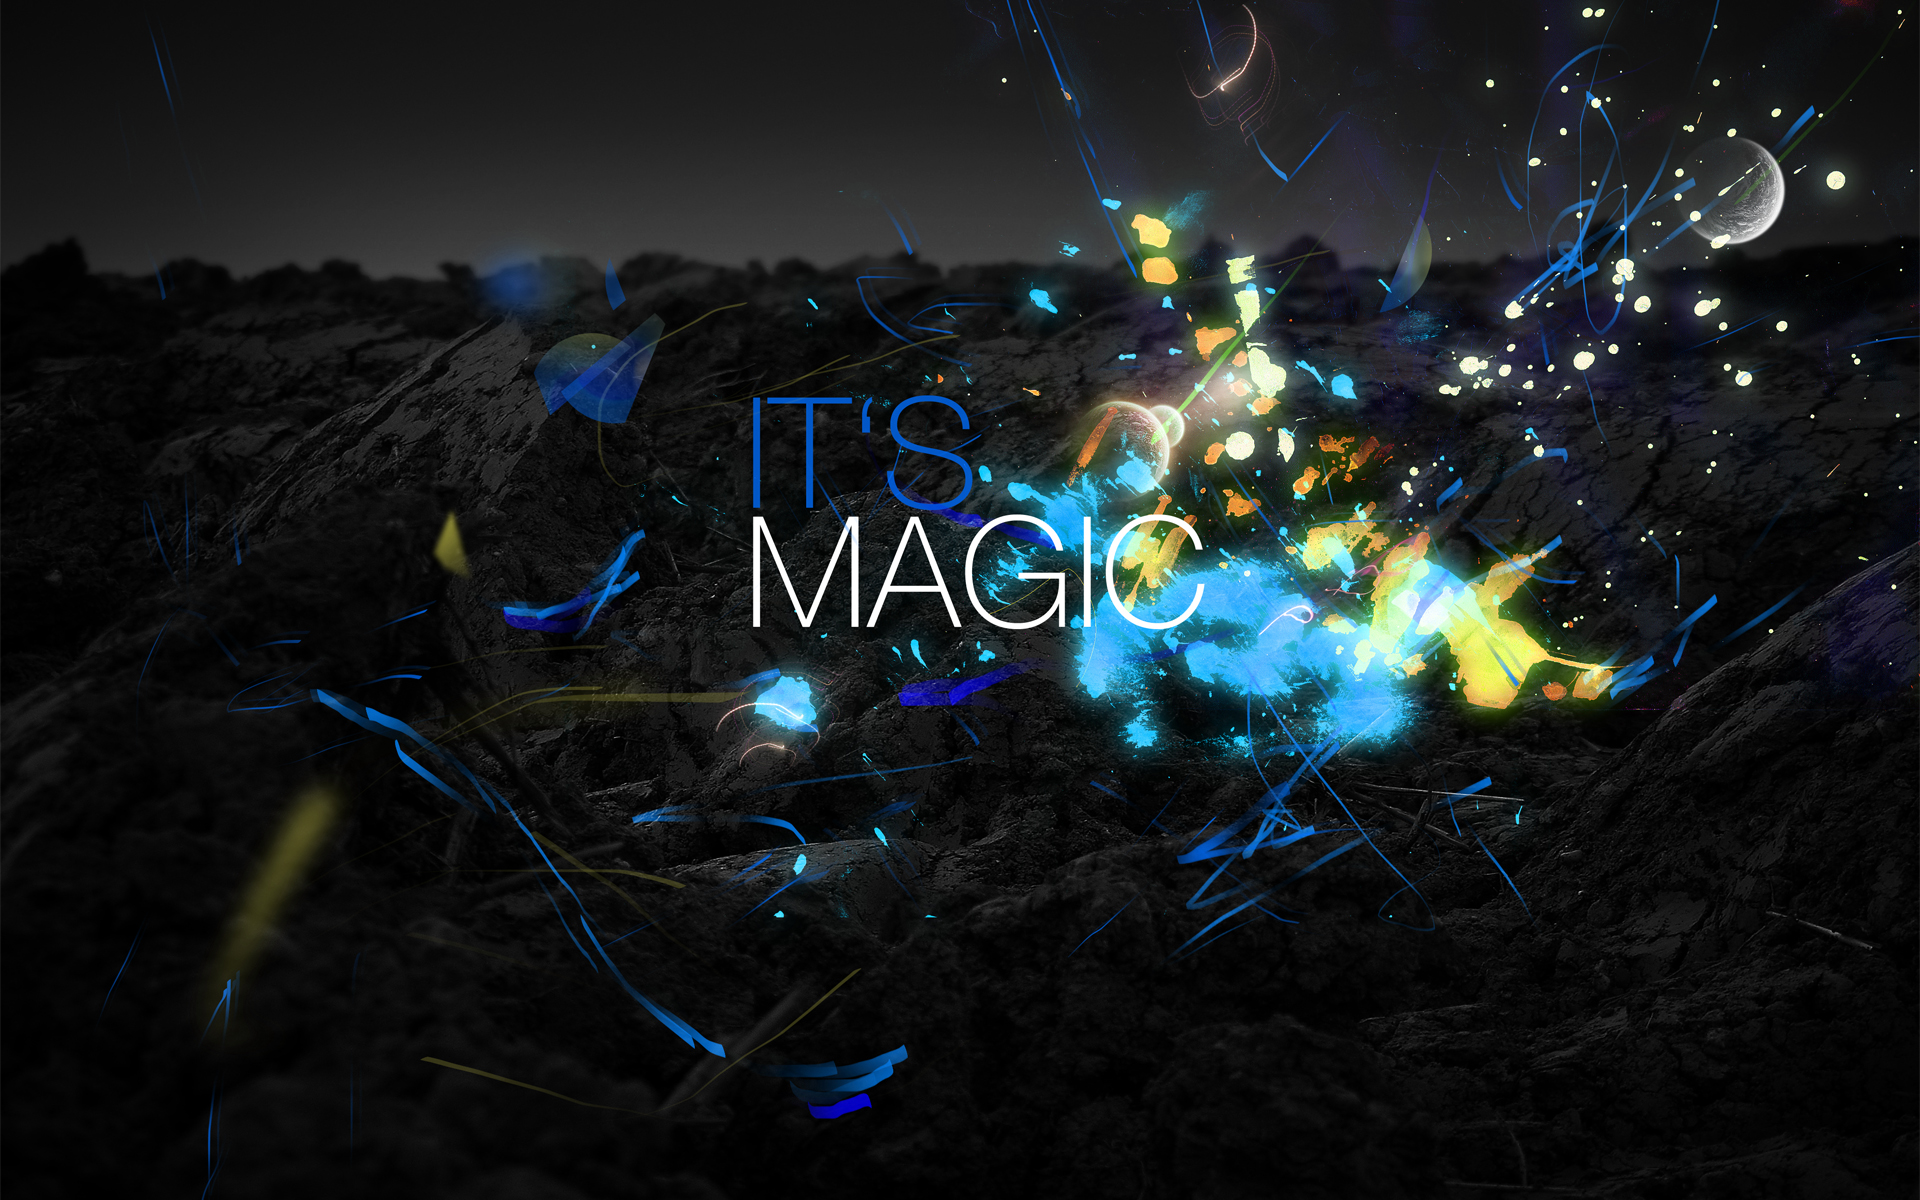 Magic Wallpapers Its Magic Myspace Backgrounds Its Magic Backgrounds 1920x1200